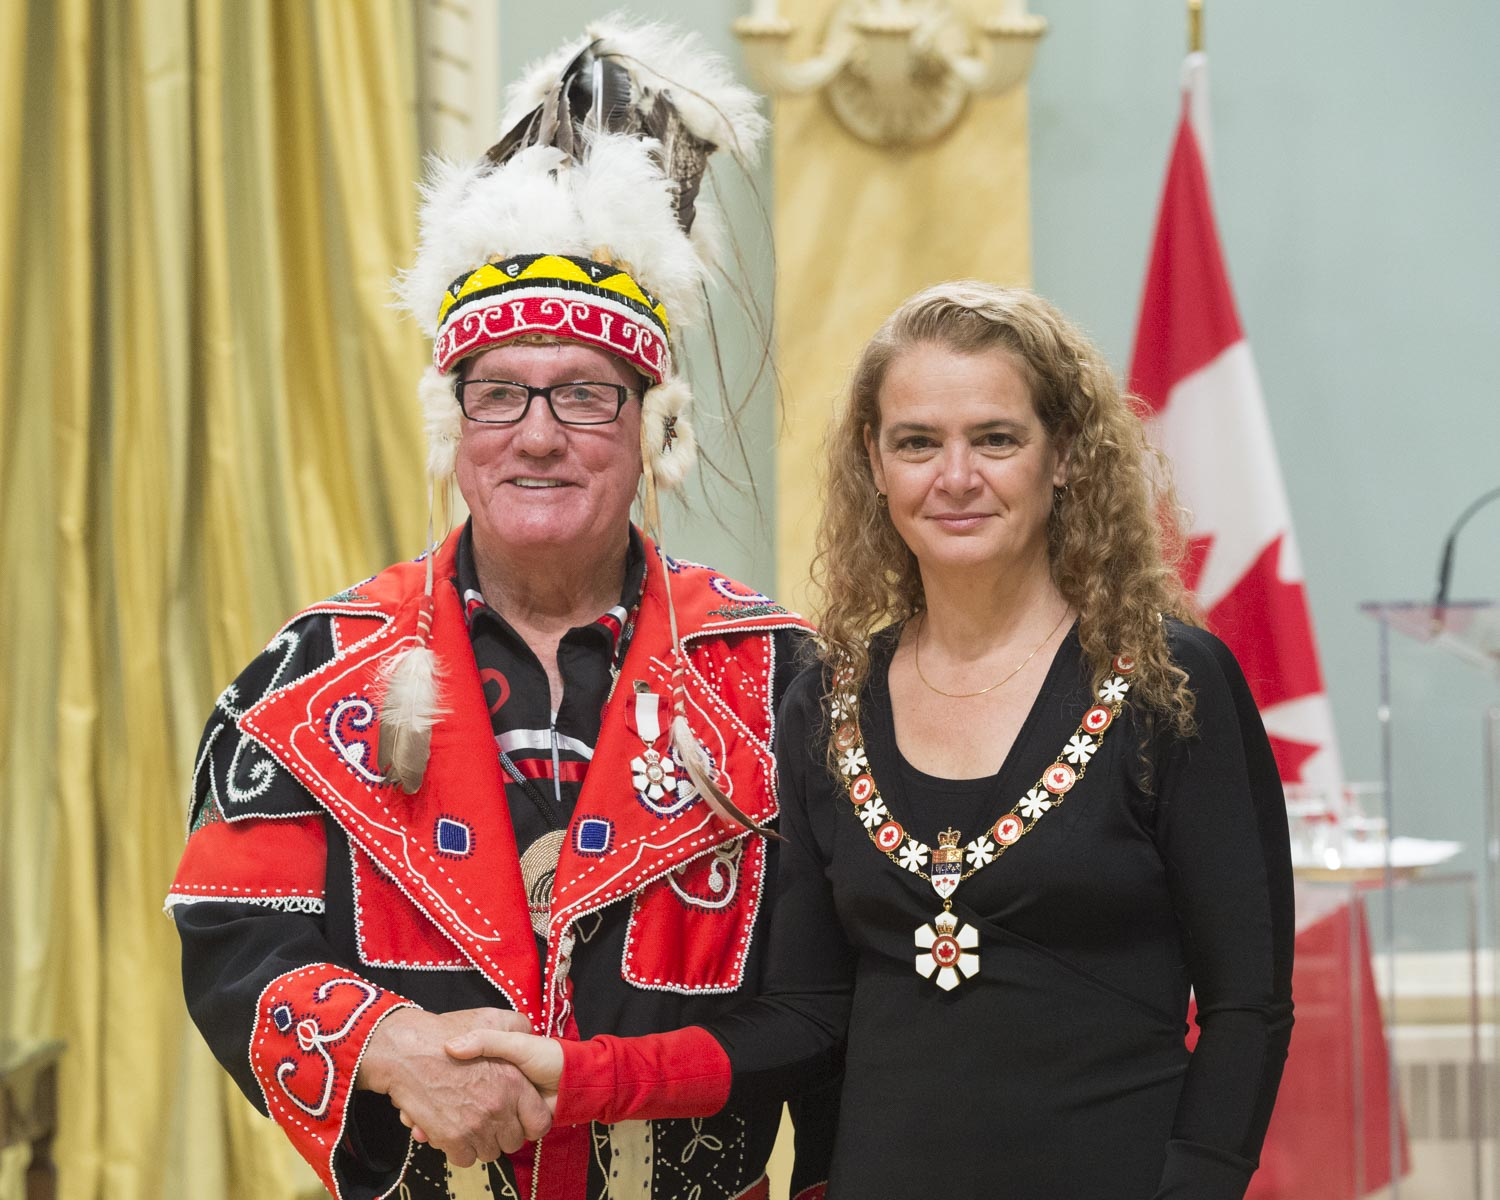 Chief Terrance Paul, C.M., has dedicated his life to establishing a better future for his constituents, especially for youth. For more than three decades, as a leader and member of Indigenous advisory committees, he has championed the preservation of language and history through education. He has also been instrumental in identifying economic opportunities for his community. Under his leadership, the Membertou First Nation became the first Indigenous community in the world to be certified under the International Organization for Standardization, in recognition of its efficient and sustainable growth.